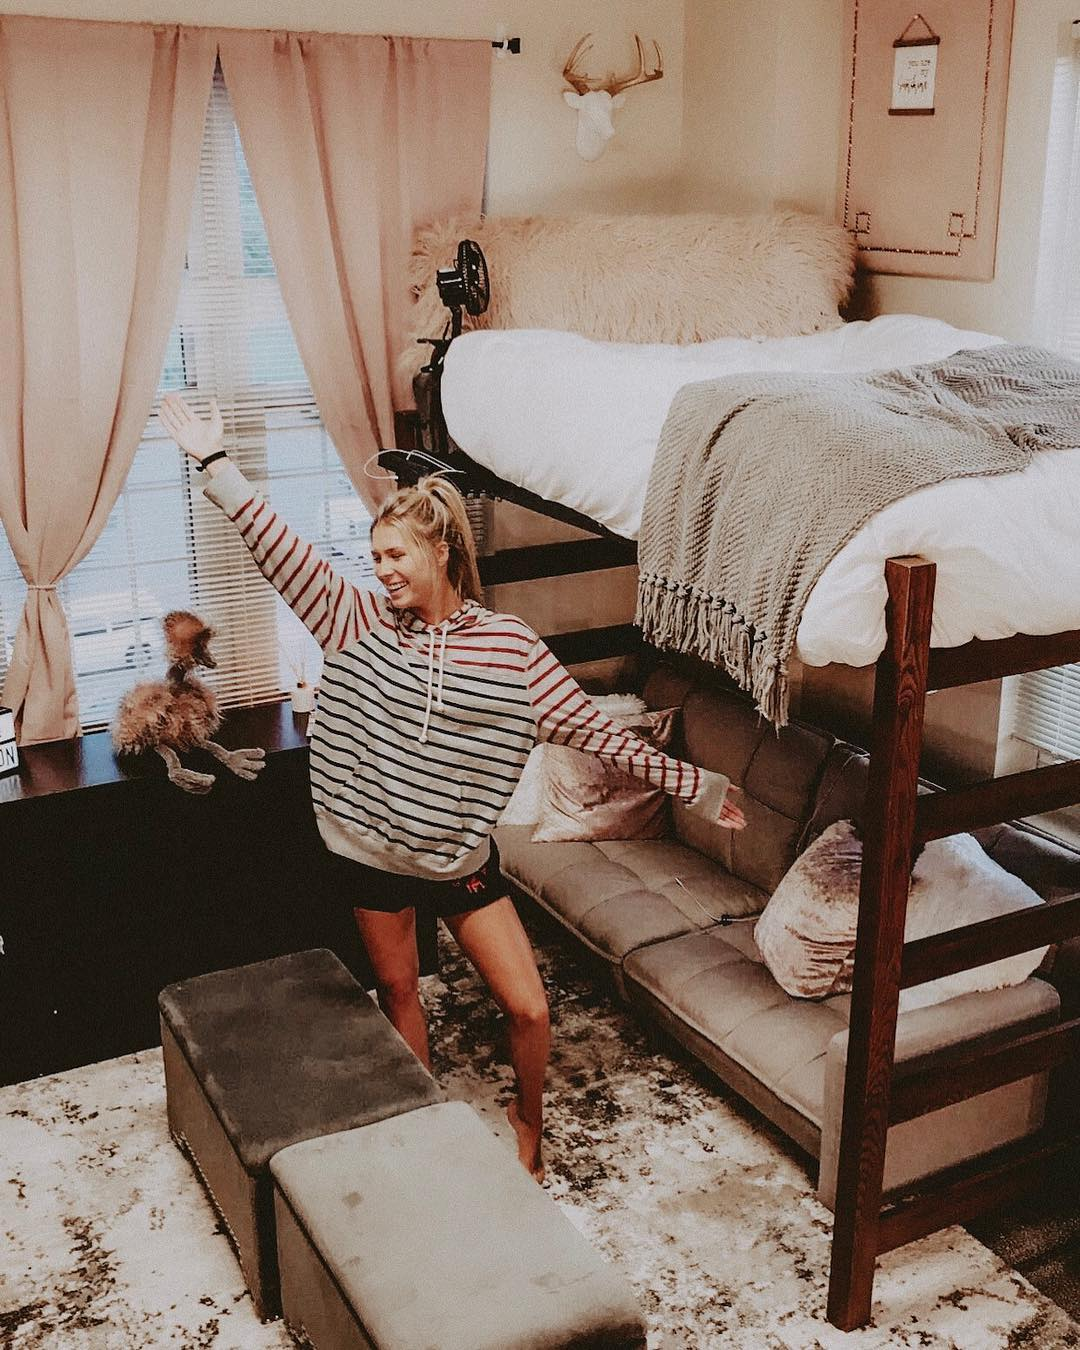 college girl posing in her dorm room with her arm up. Room decorated with grey, soft looking things